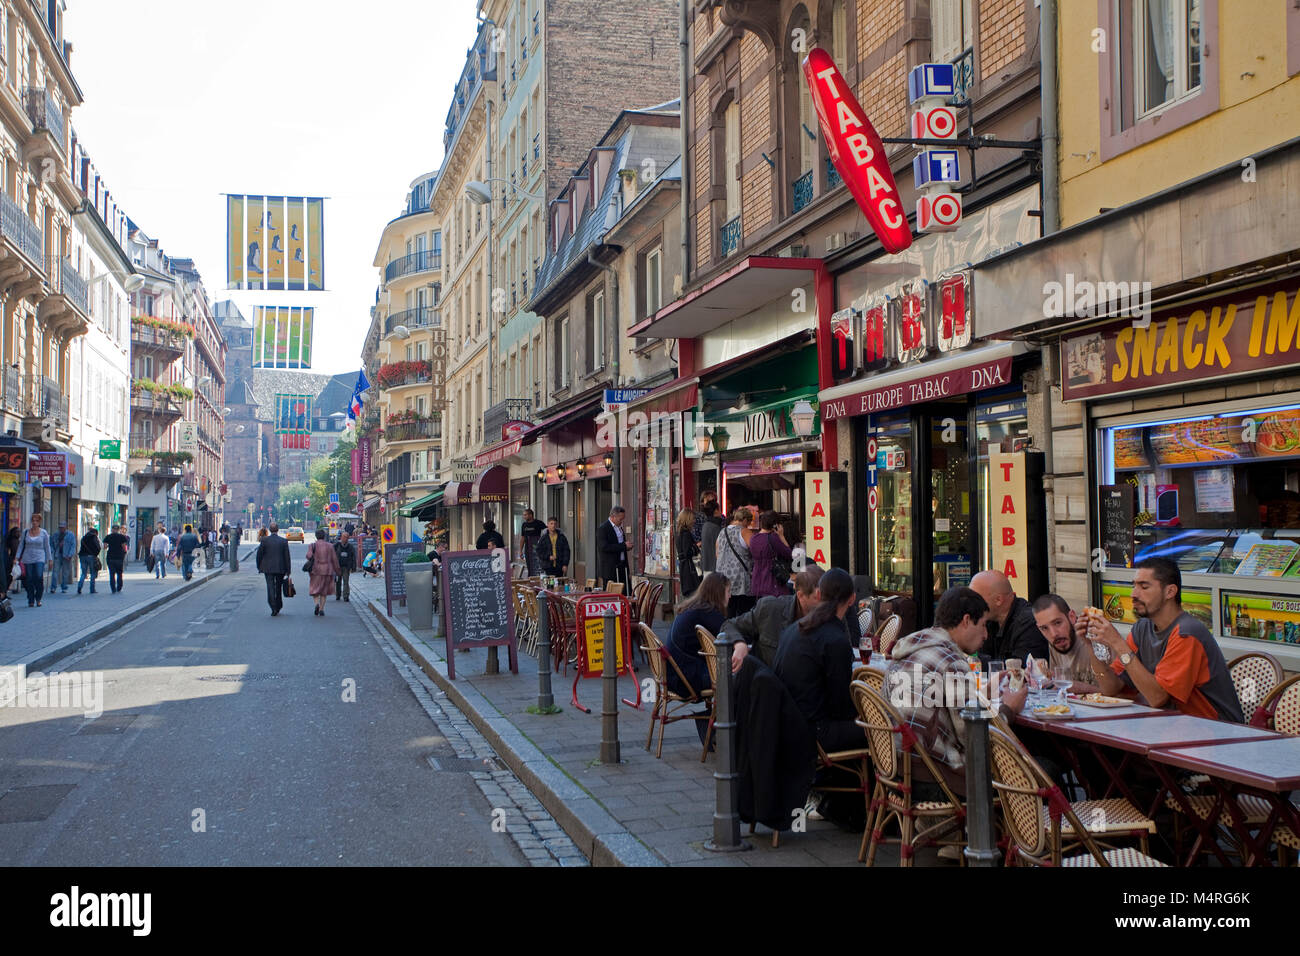 Maire stock photos maire stock images alamy for Rue du miroir strasbourg